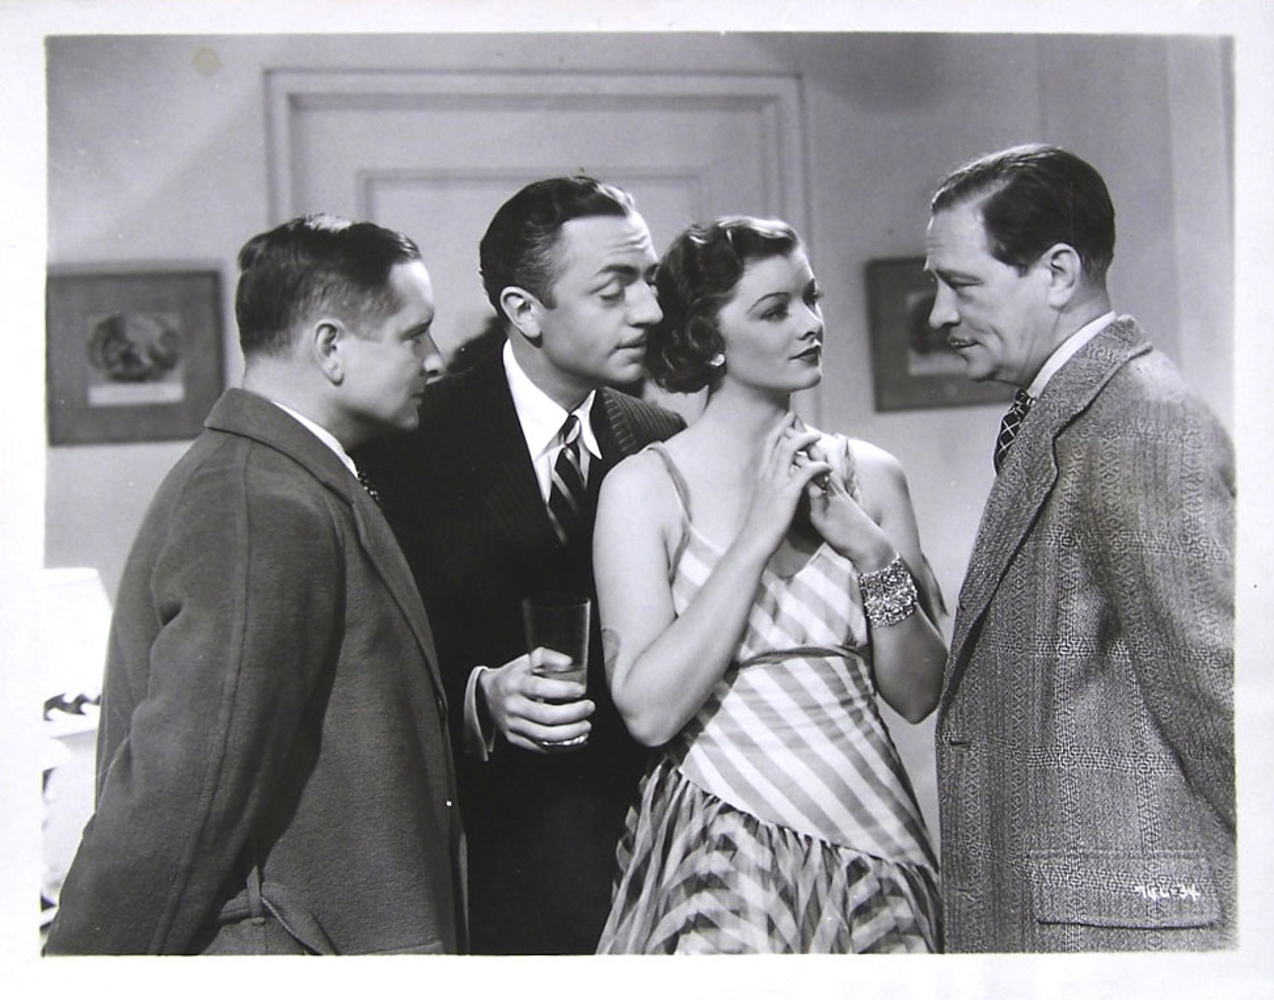 the thin man 1934 scene still photo 746-34